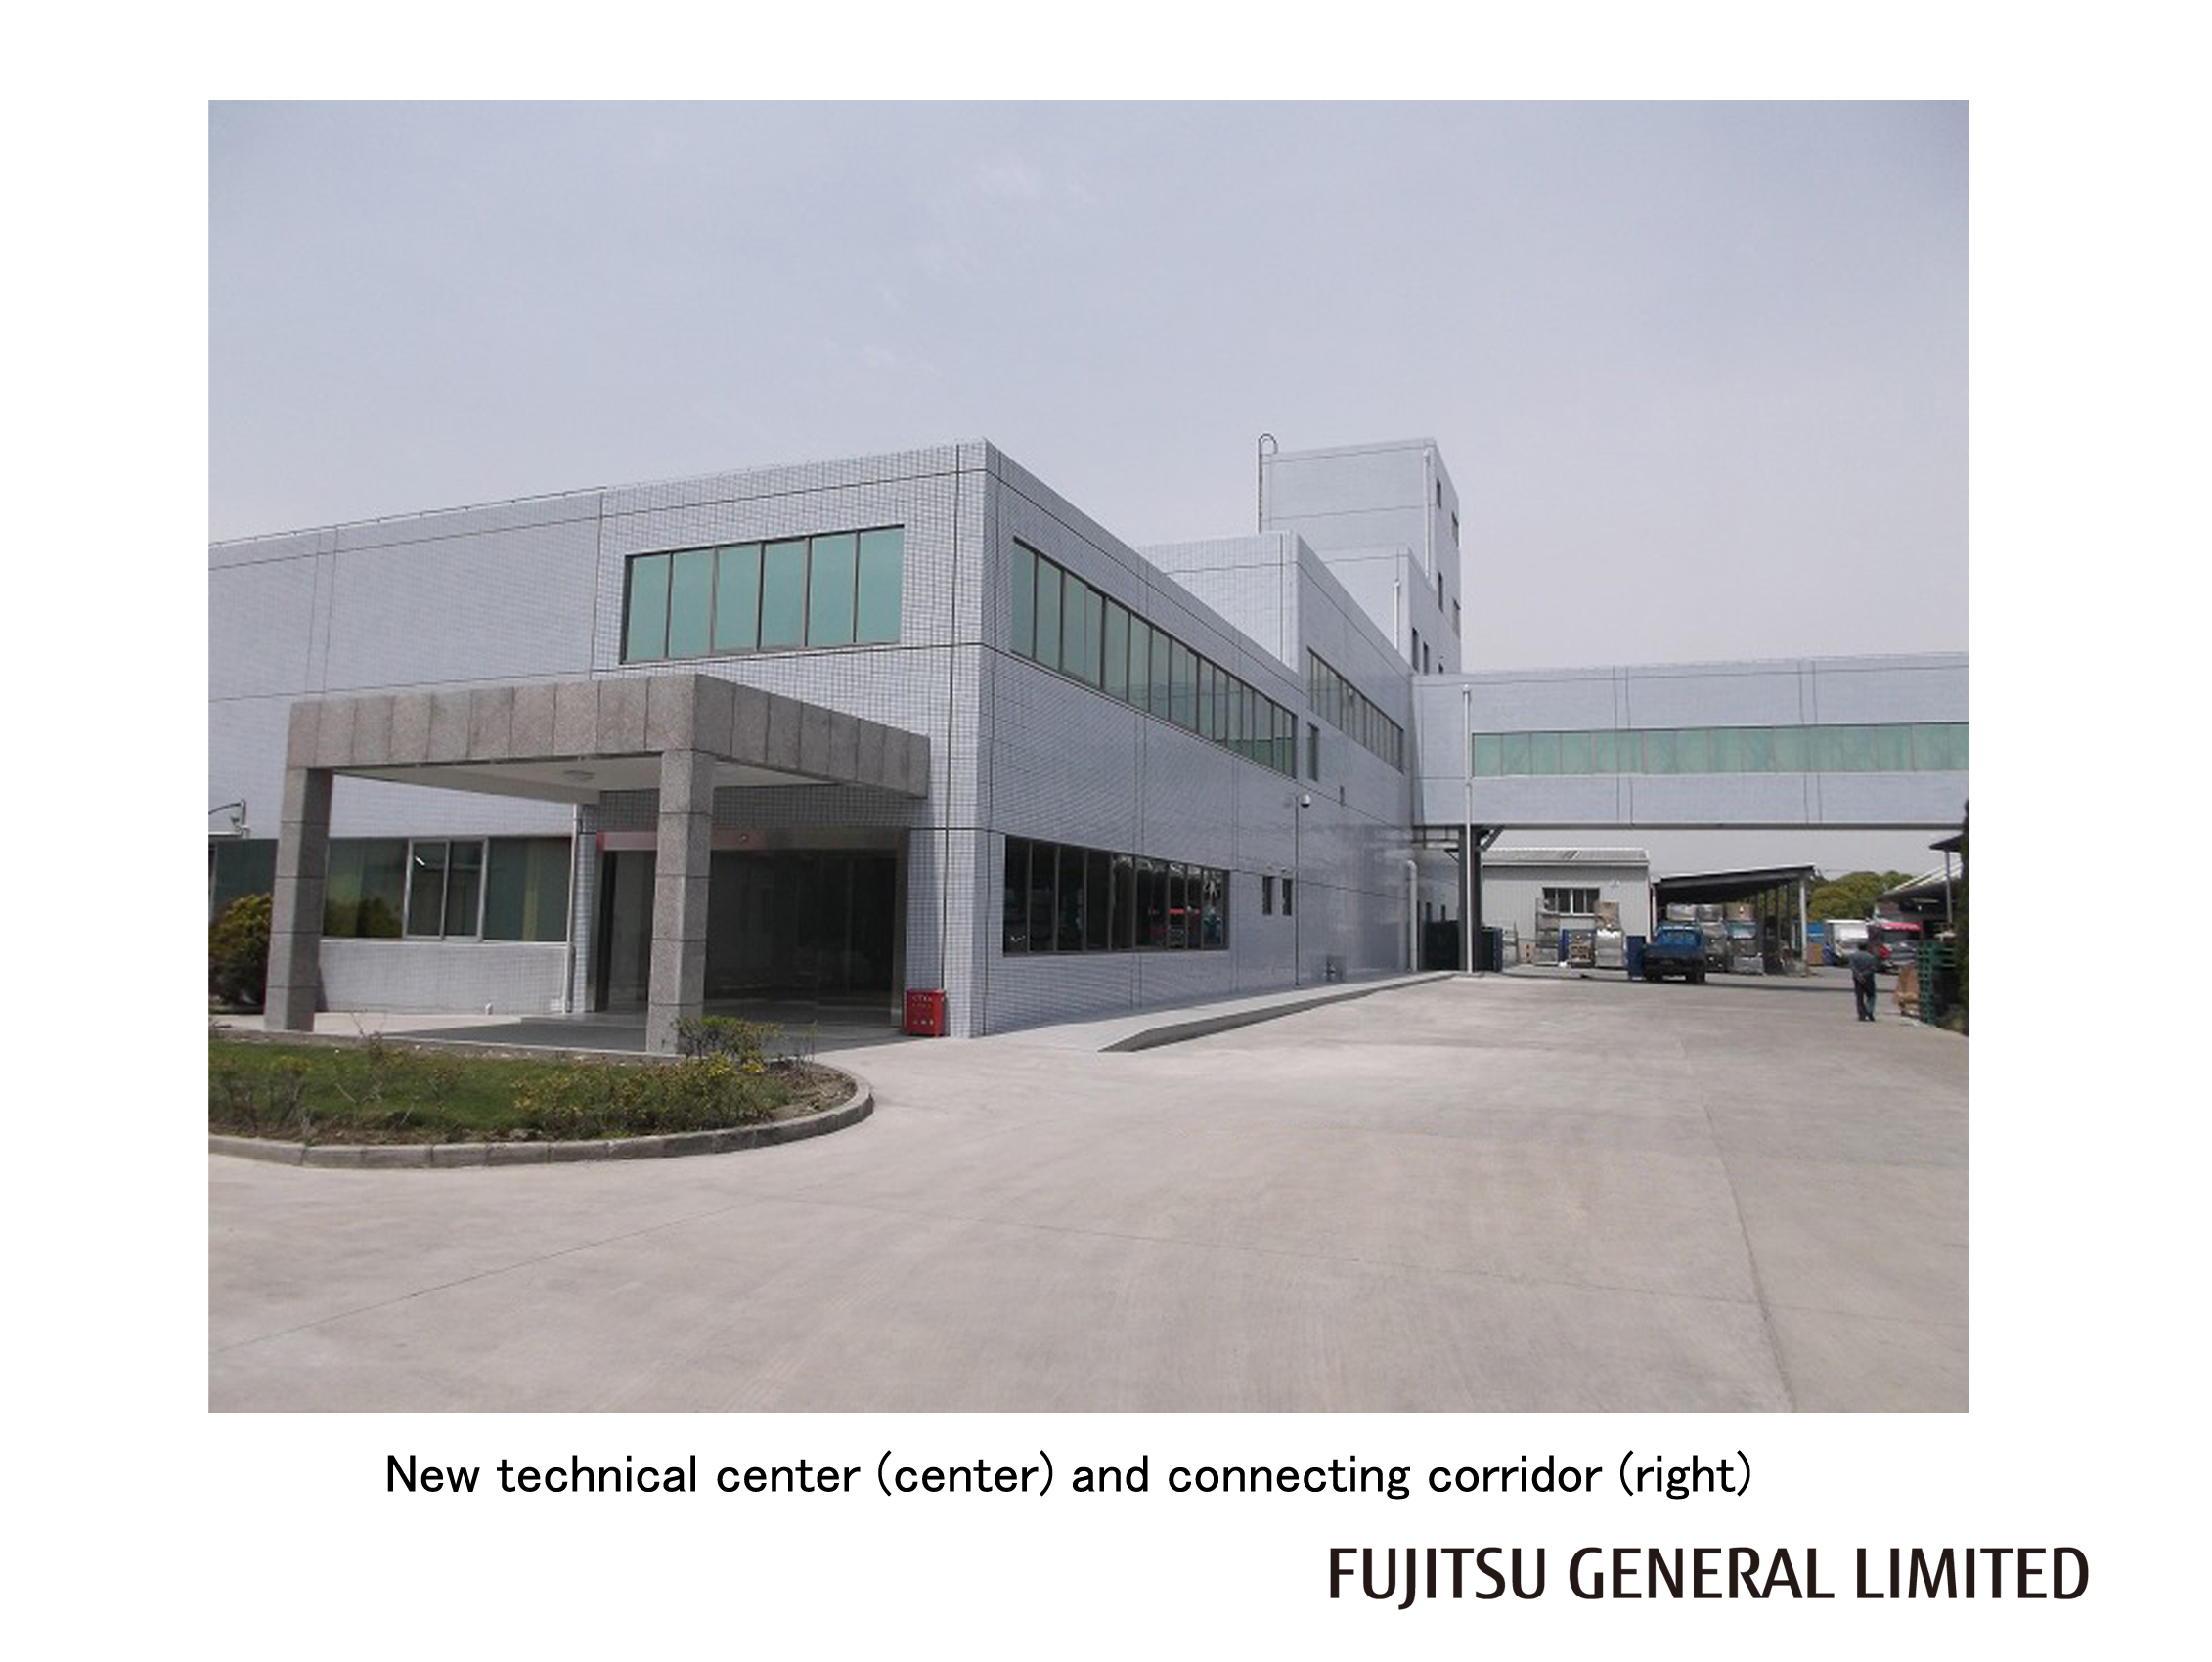 Expanding Technical Center In Fujitsu General Shanghai To Promote #615B45